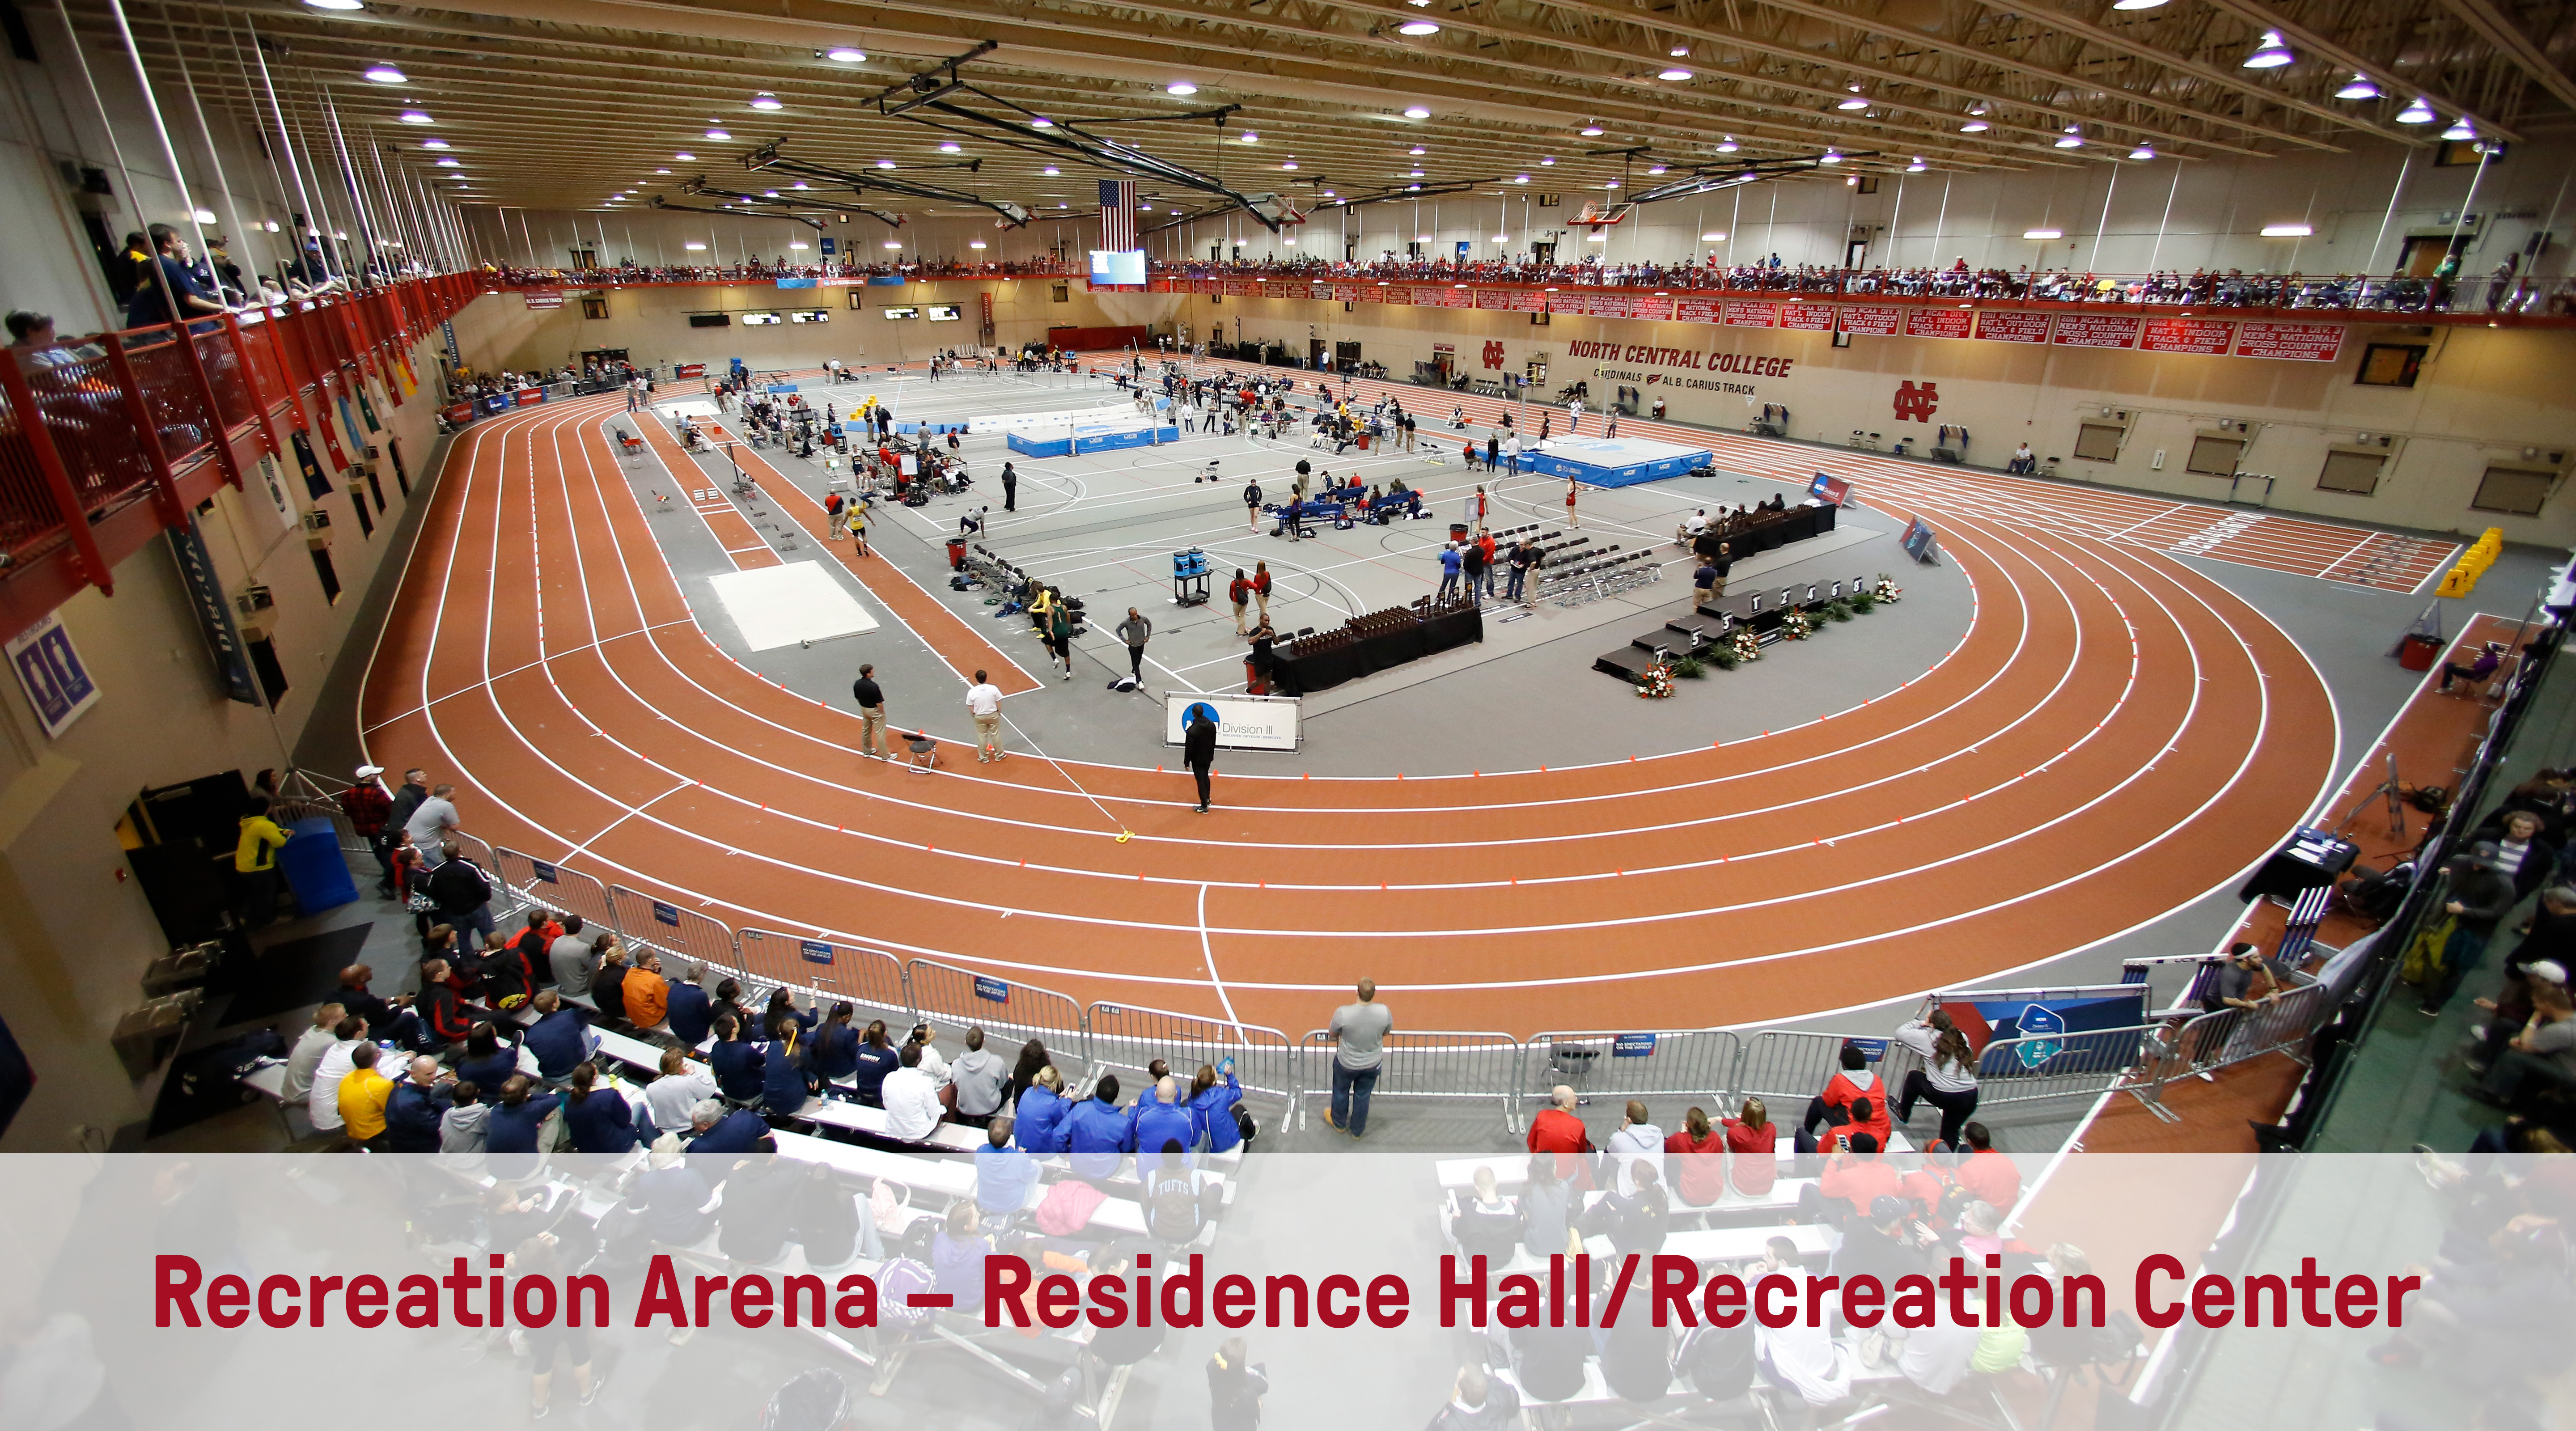 Recreation Arena – Residence Hall/Recreation Center